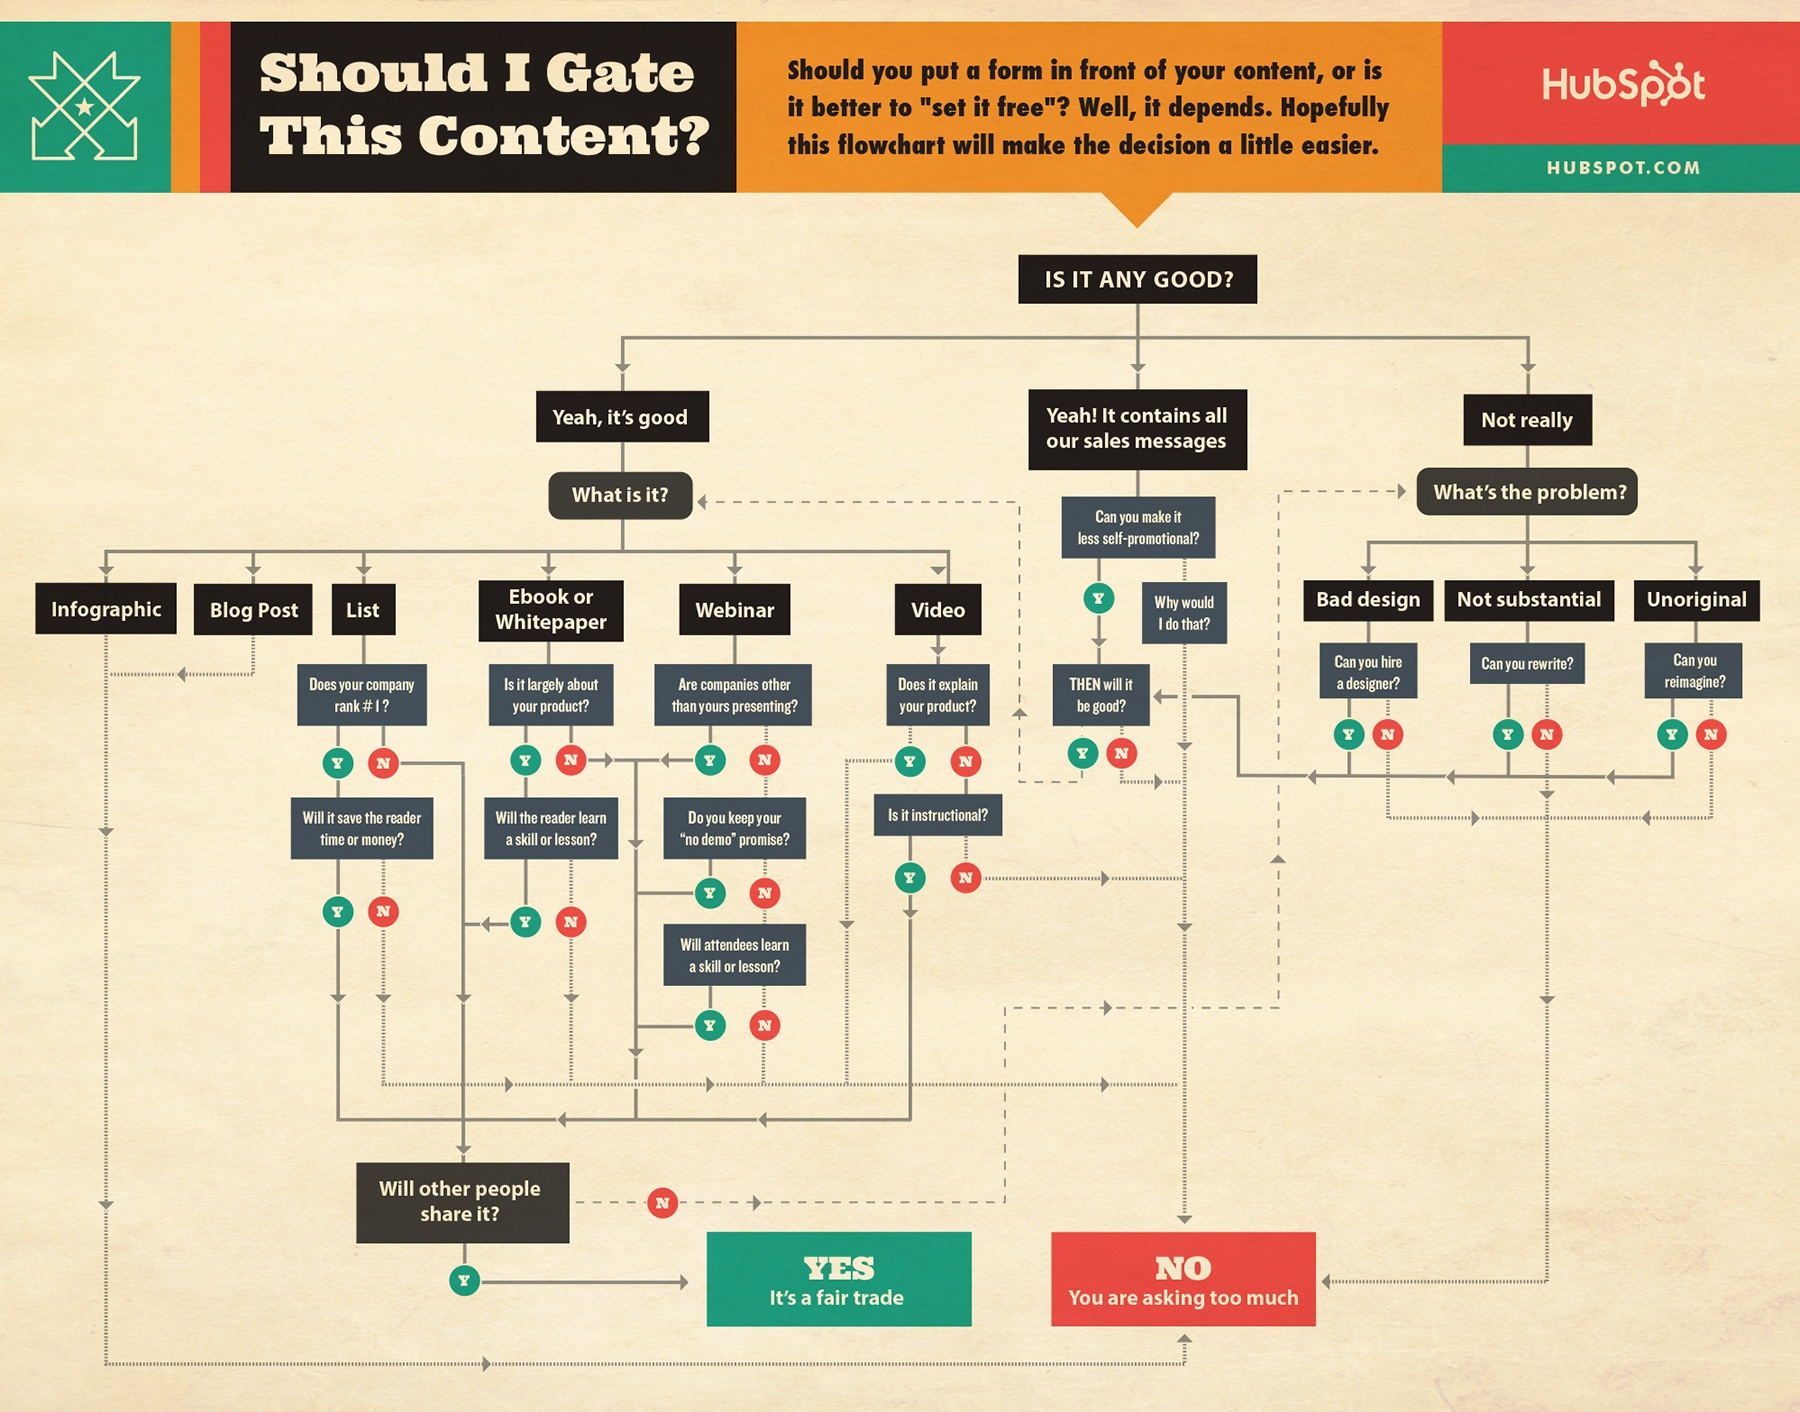 Should-I-Gate-Content-Flowchart-HubSpot.jpg